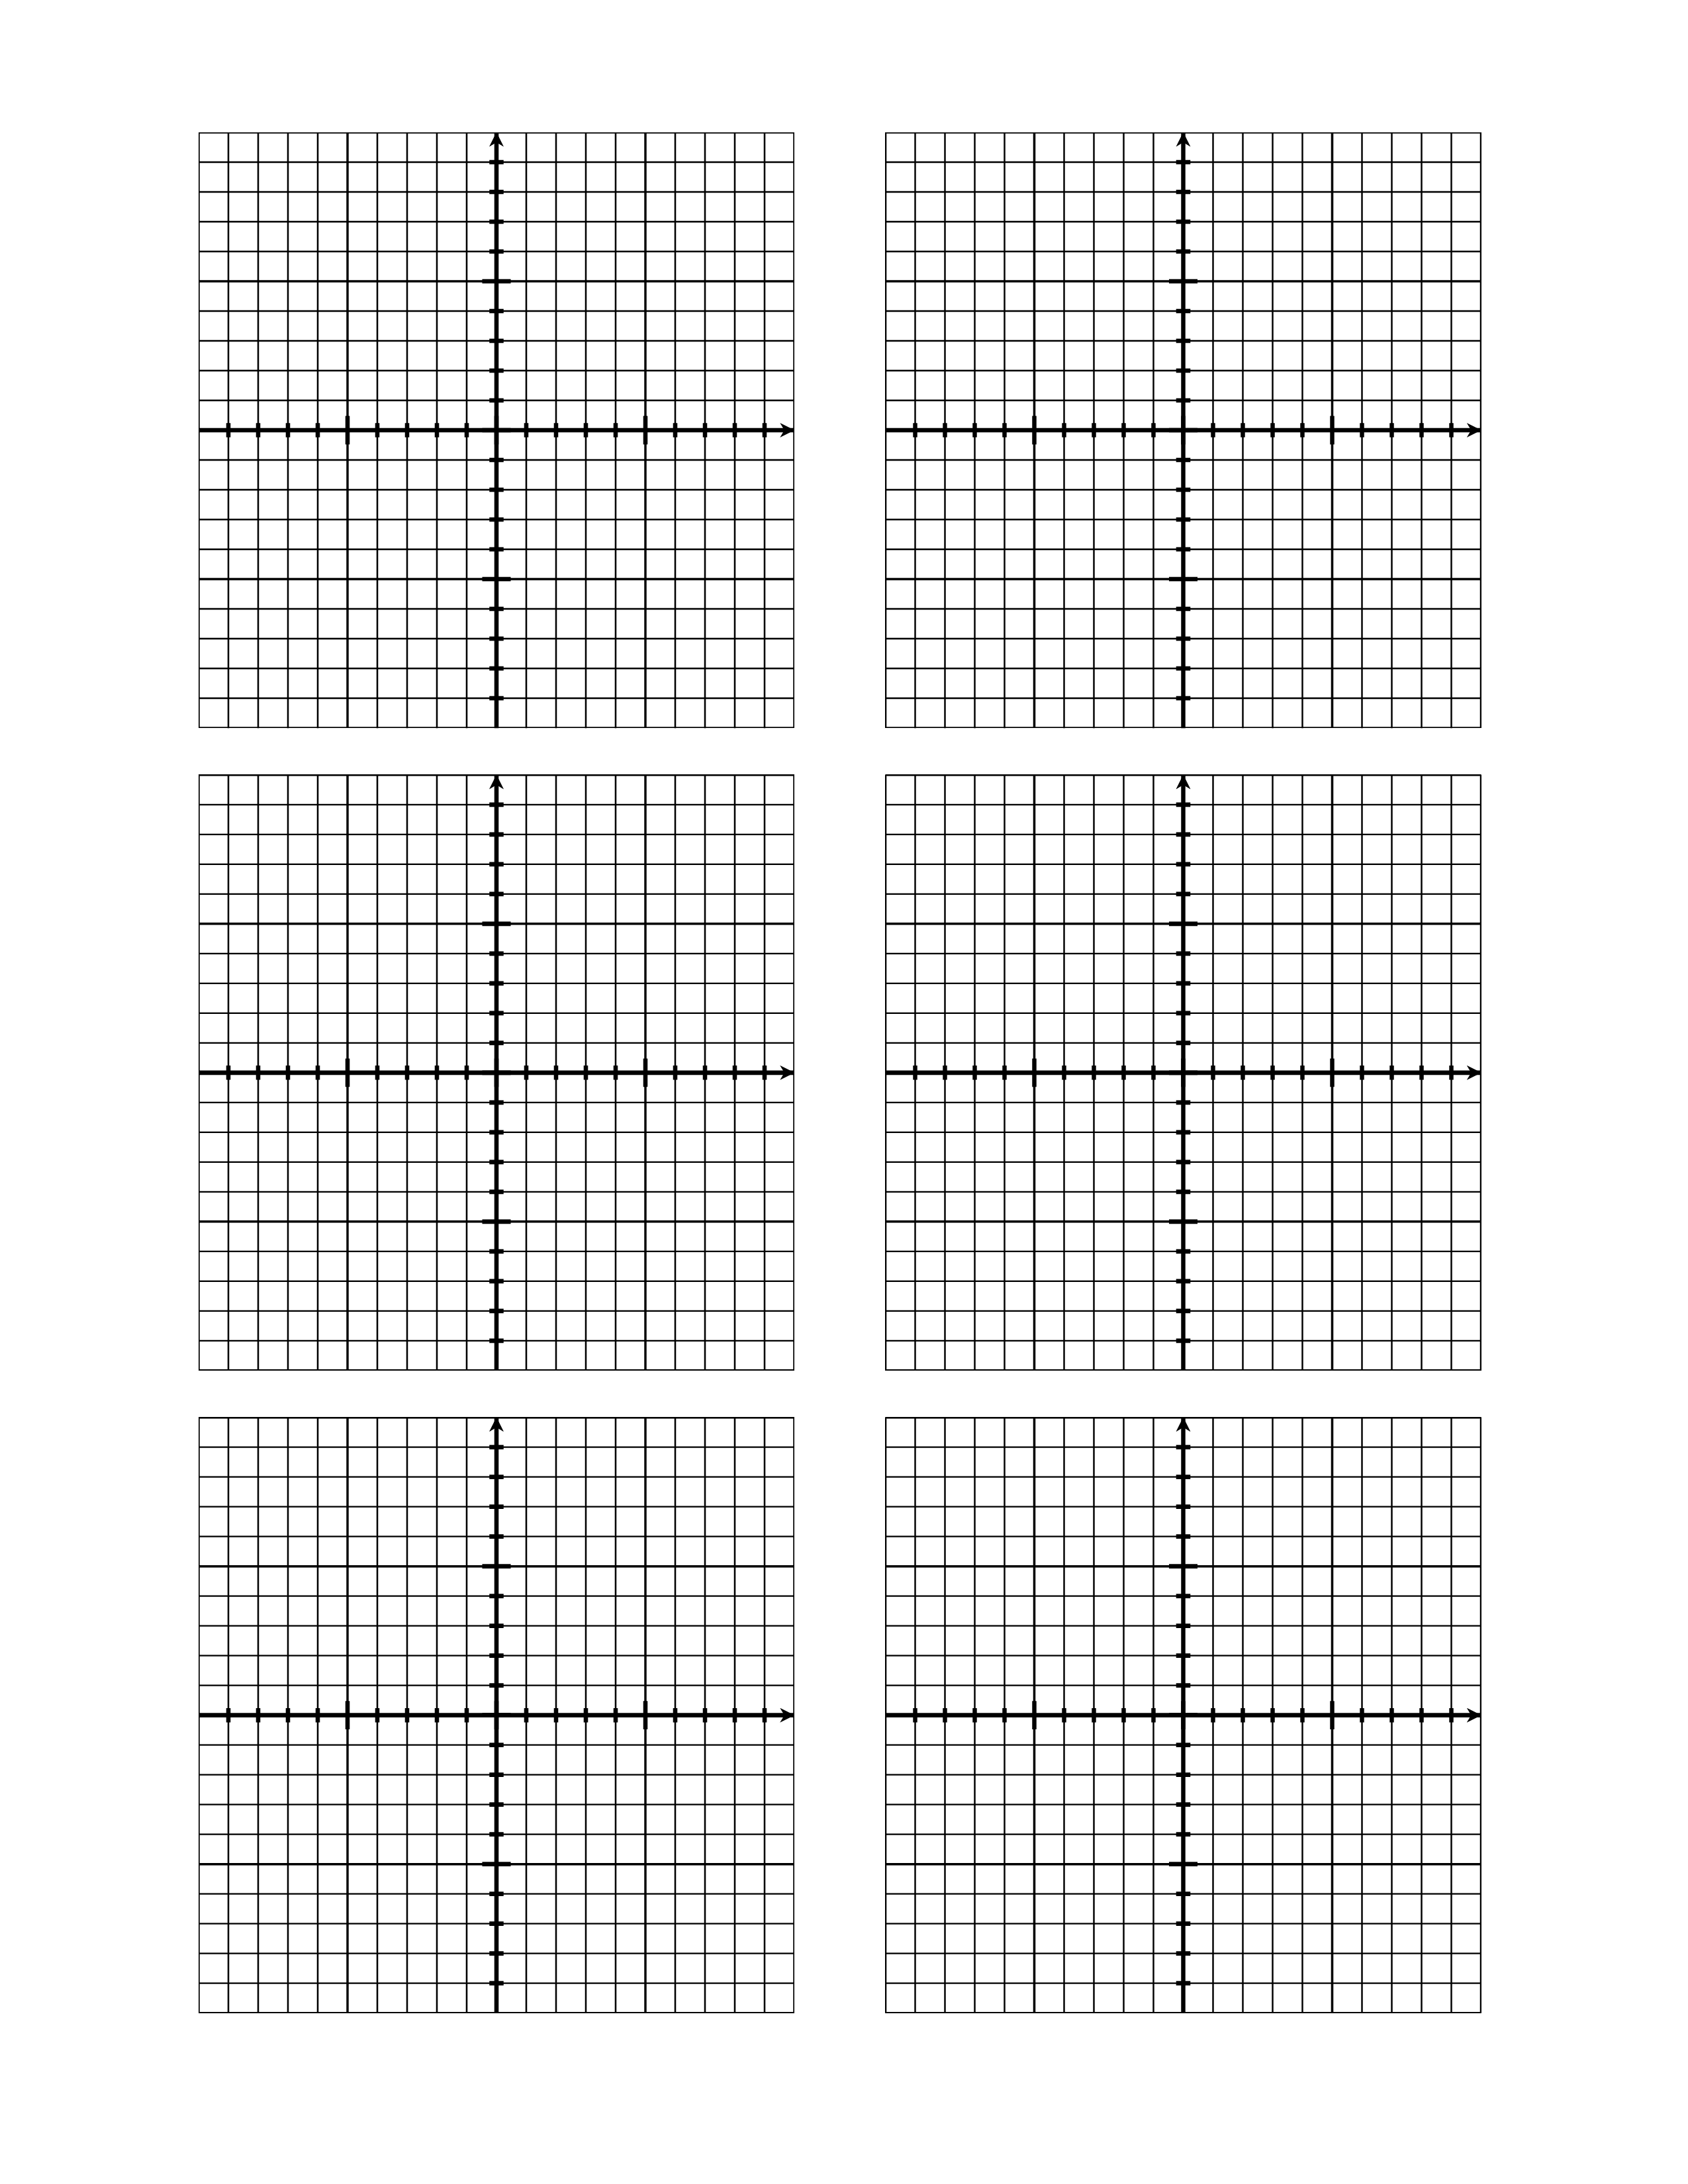 free large grid graph paper templates at